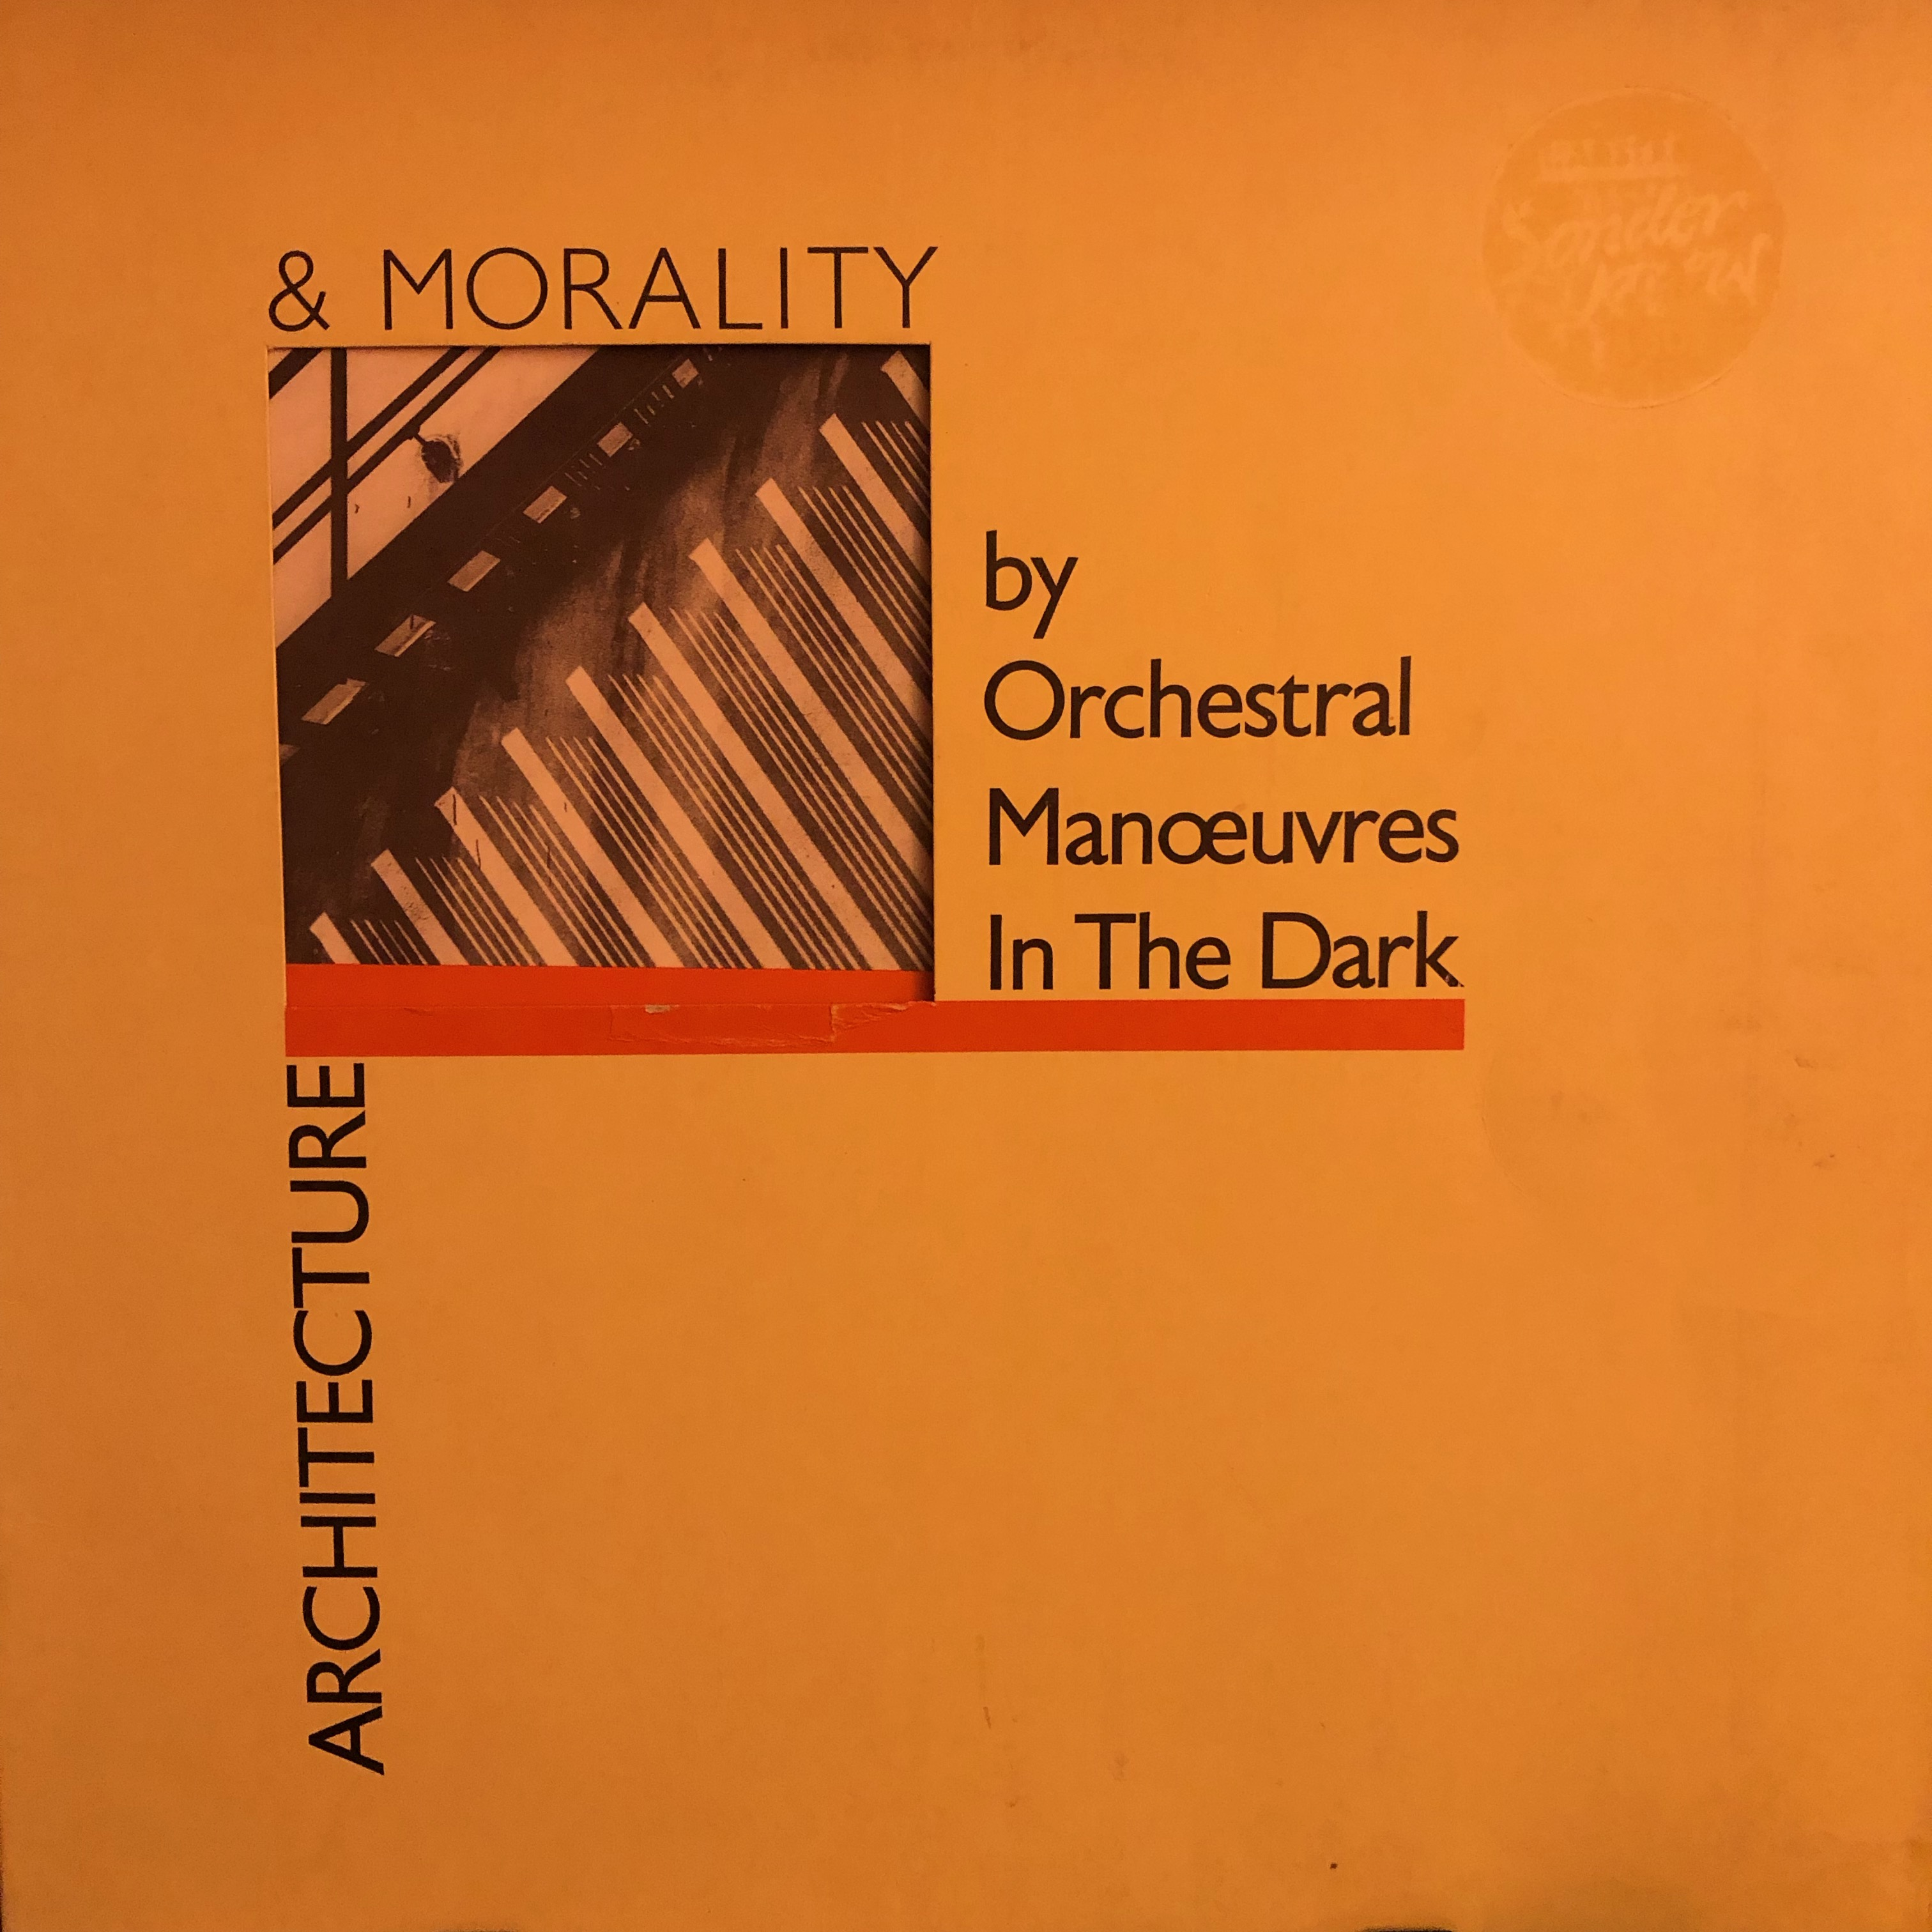 OMD - Architecture and Morality - Front Cover